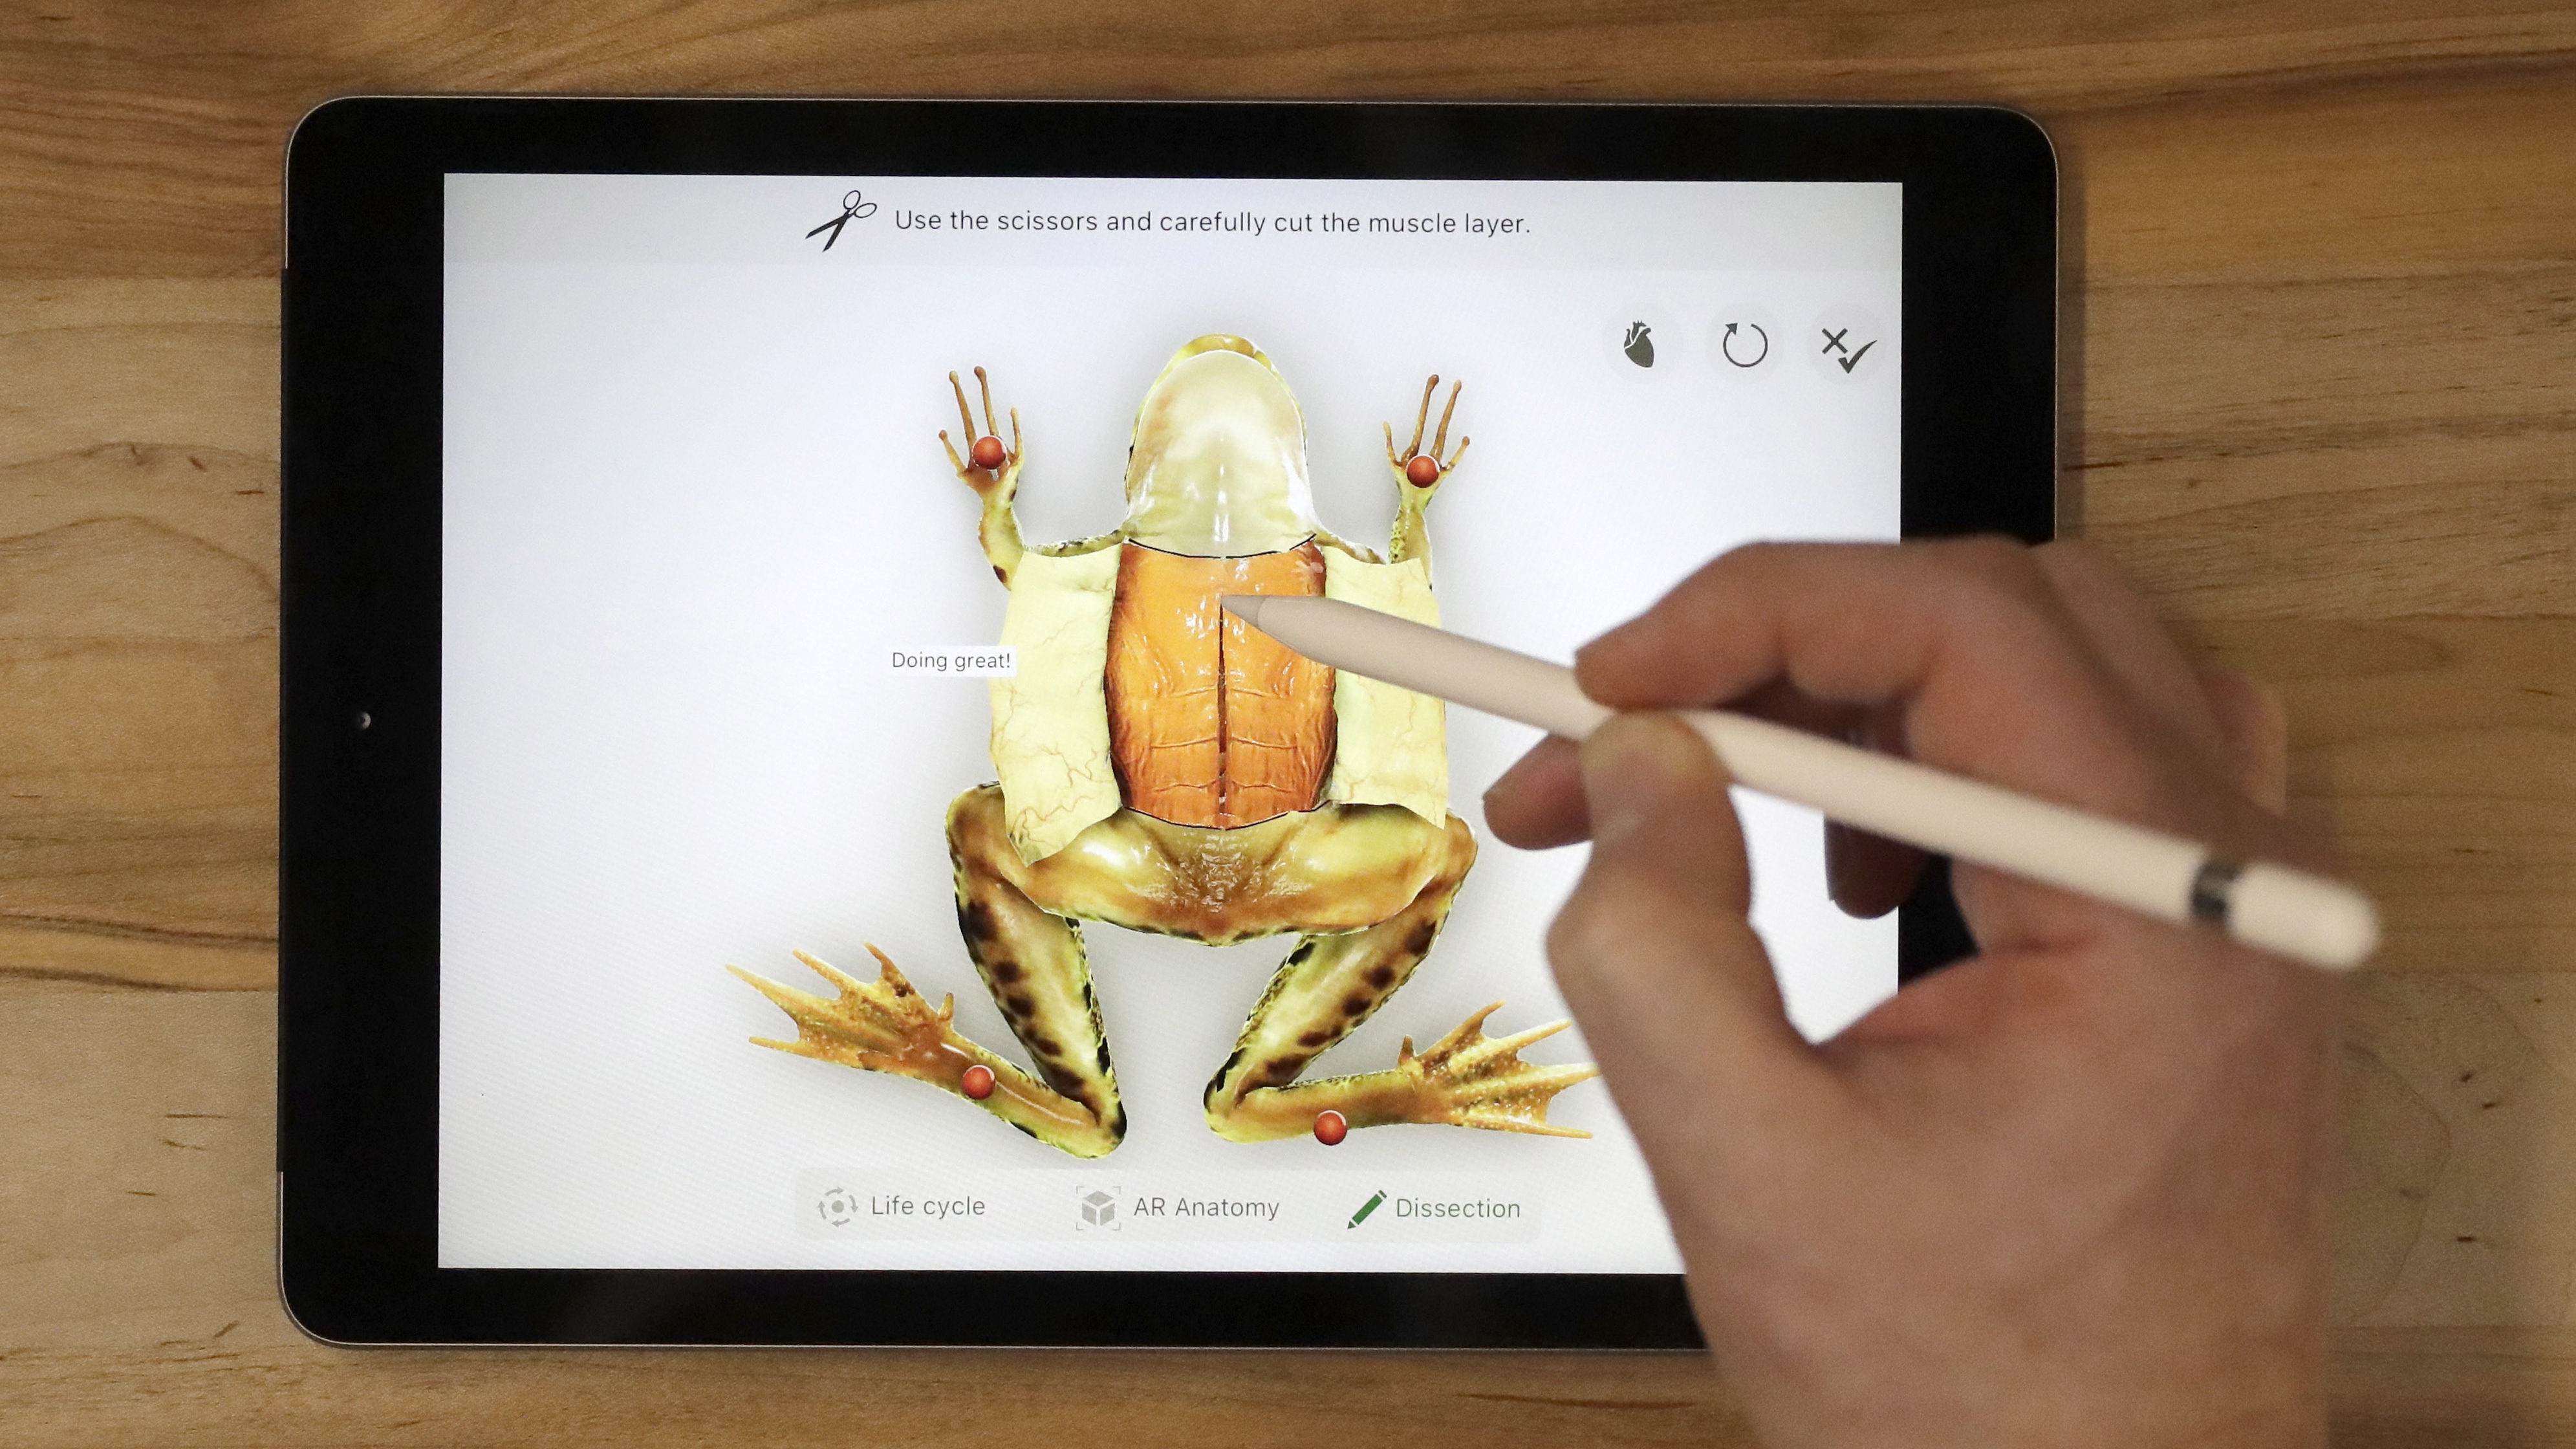 A demonstration of the Froggipedia App using the Apple Pencil on the new 9.7-inch iPad is performed at an Apple educational event at Lane Technical College Prep High School, Tuesday, March 27, 2018, in Chicago. (AP Photo/Charles Rex Arbogast)